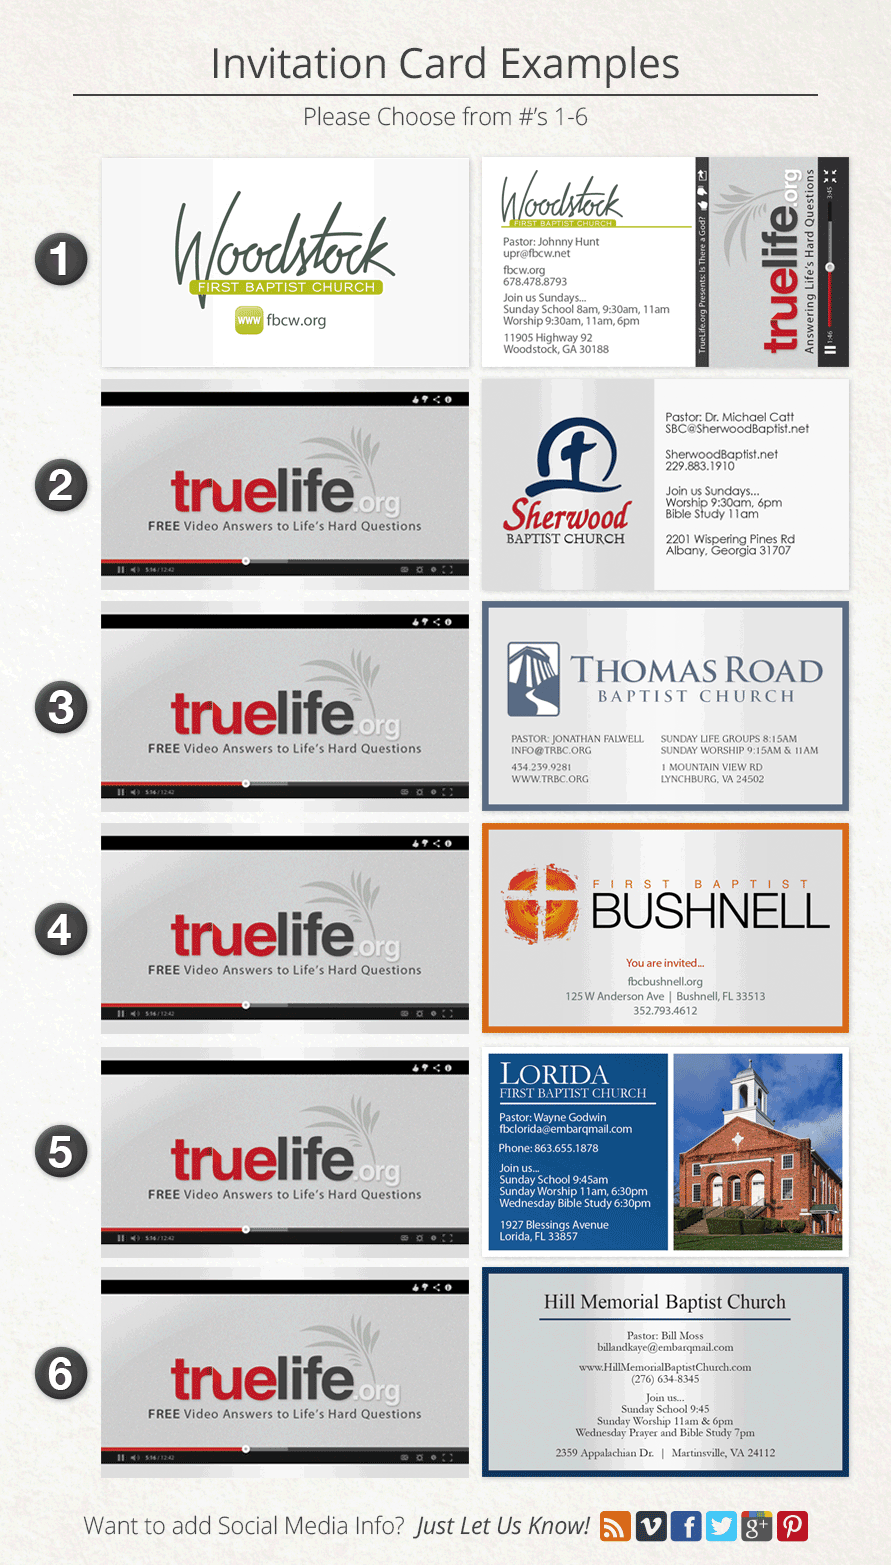 Different-truelife-card-examples-1-6